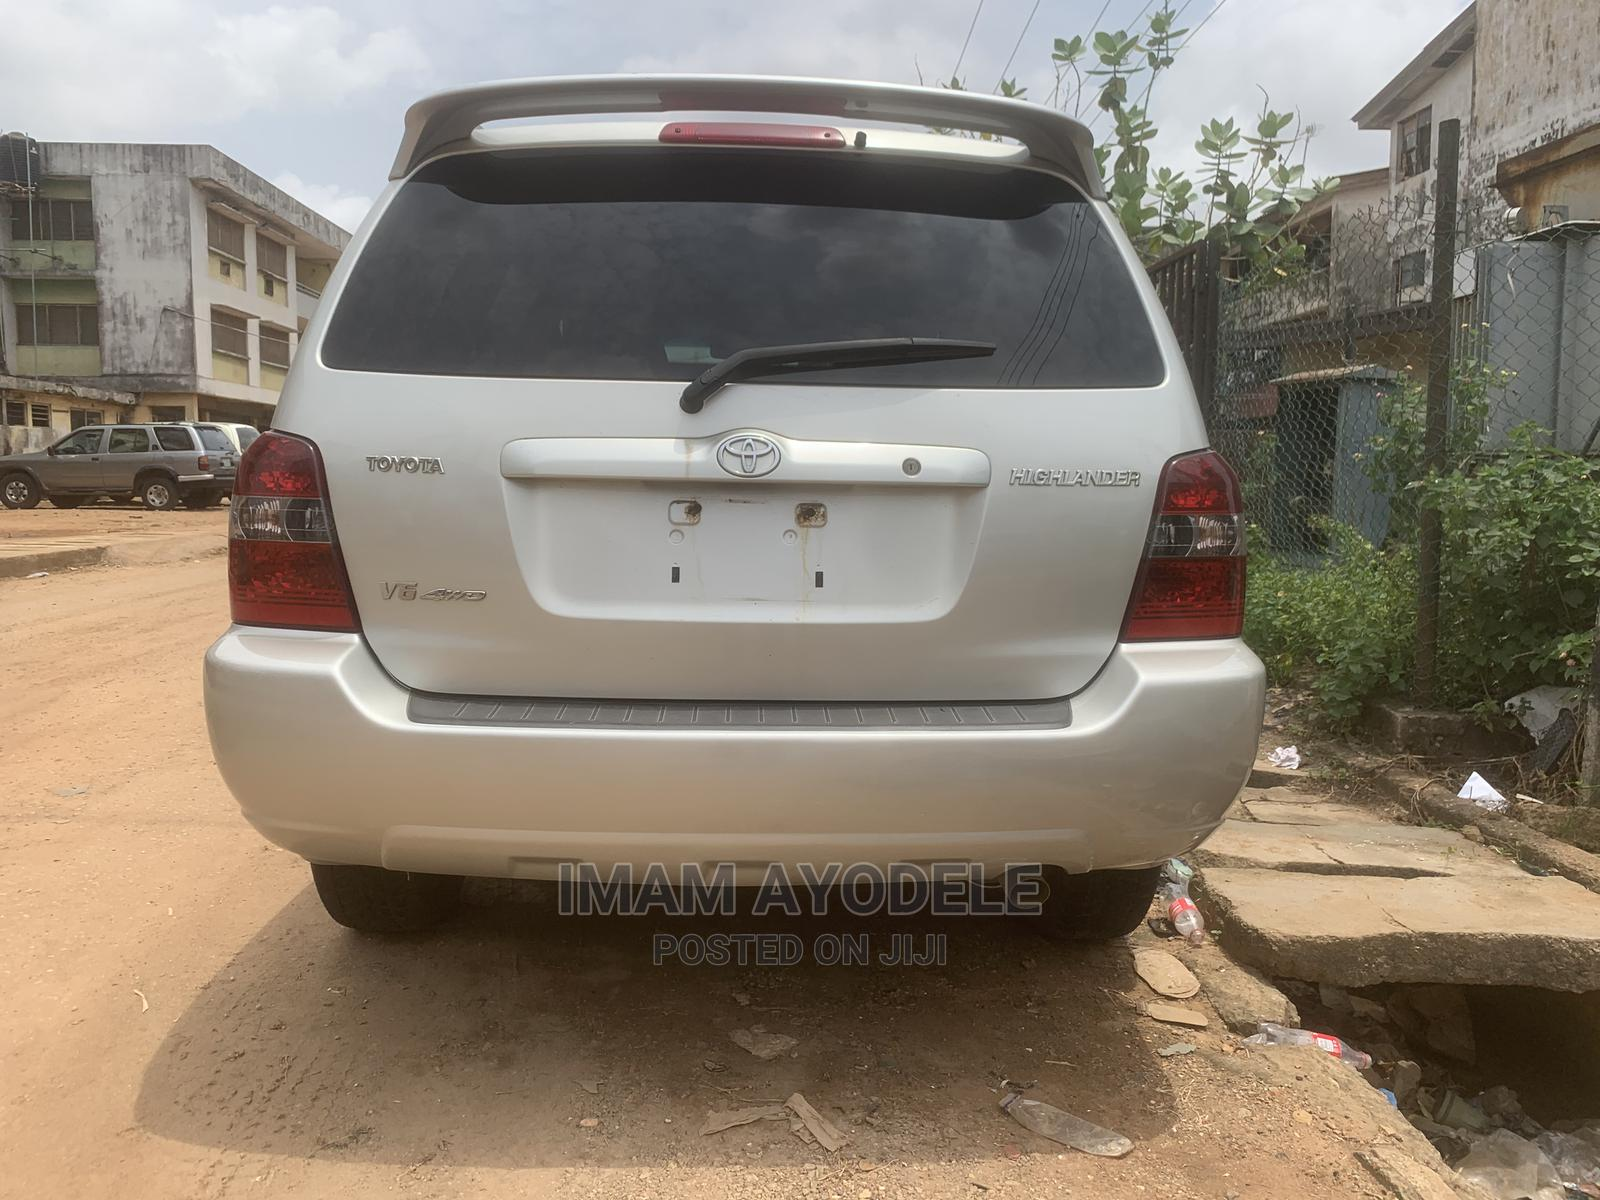 Toyota Highlander 2004 Limited V6 FWD Silver | Cars for sale in Isolo, Lagos State, Nigeria